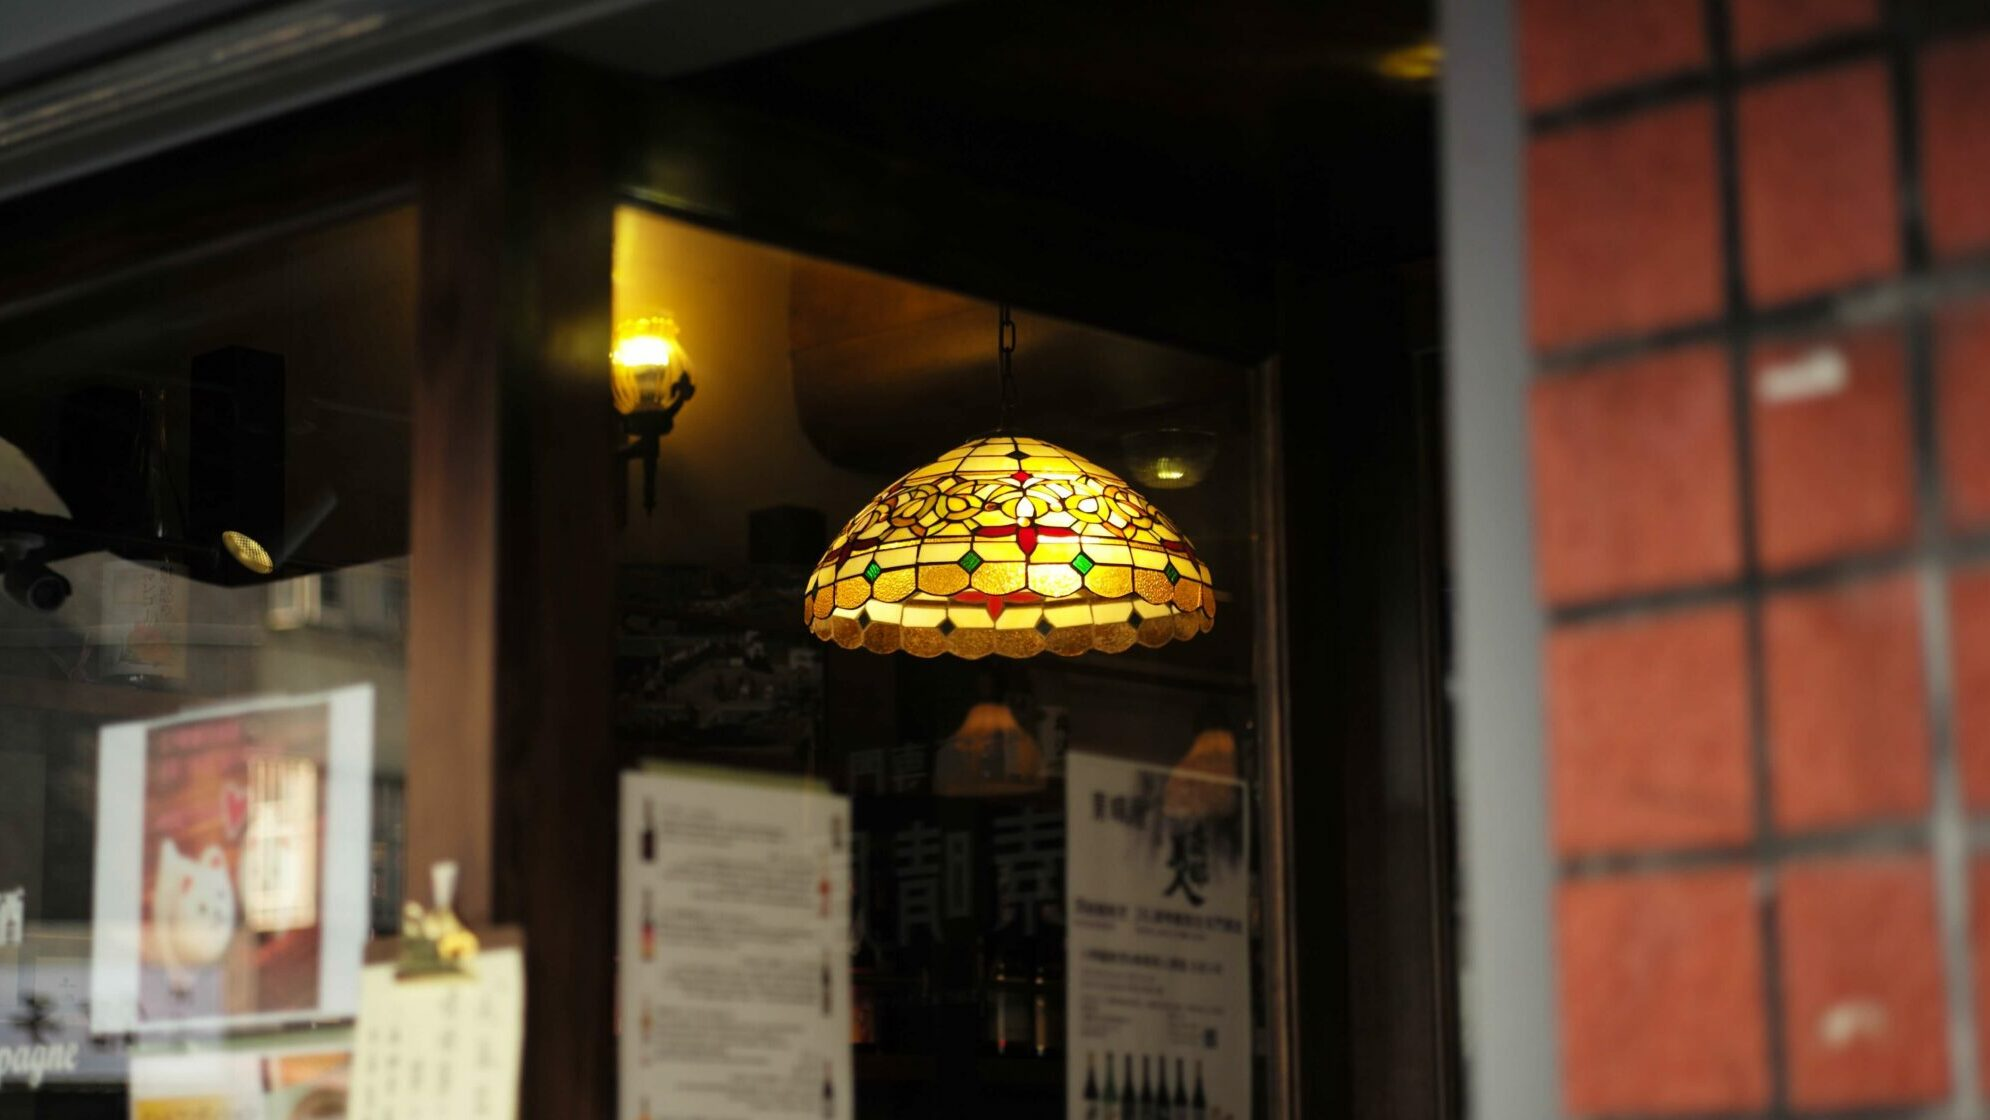 yellow glass lighting fixture hanging in shop